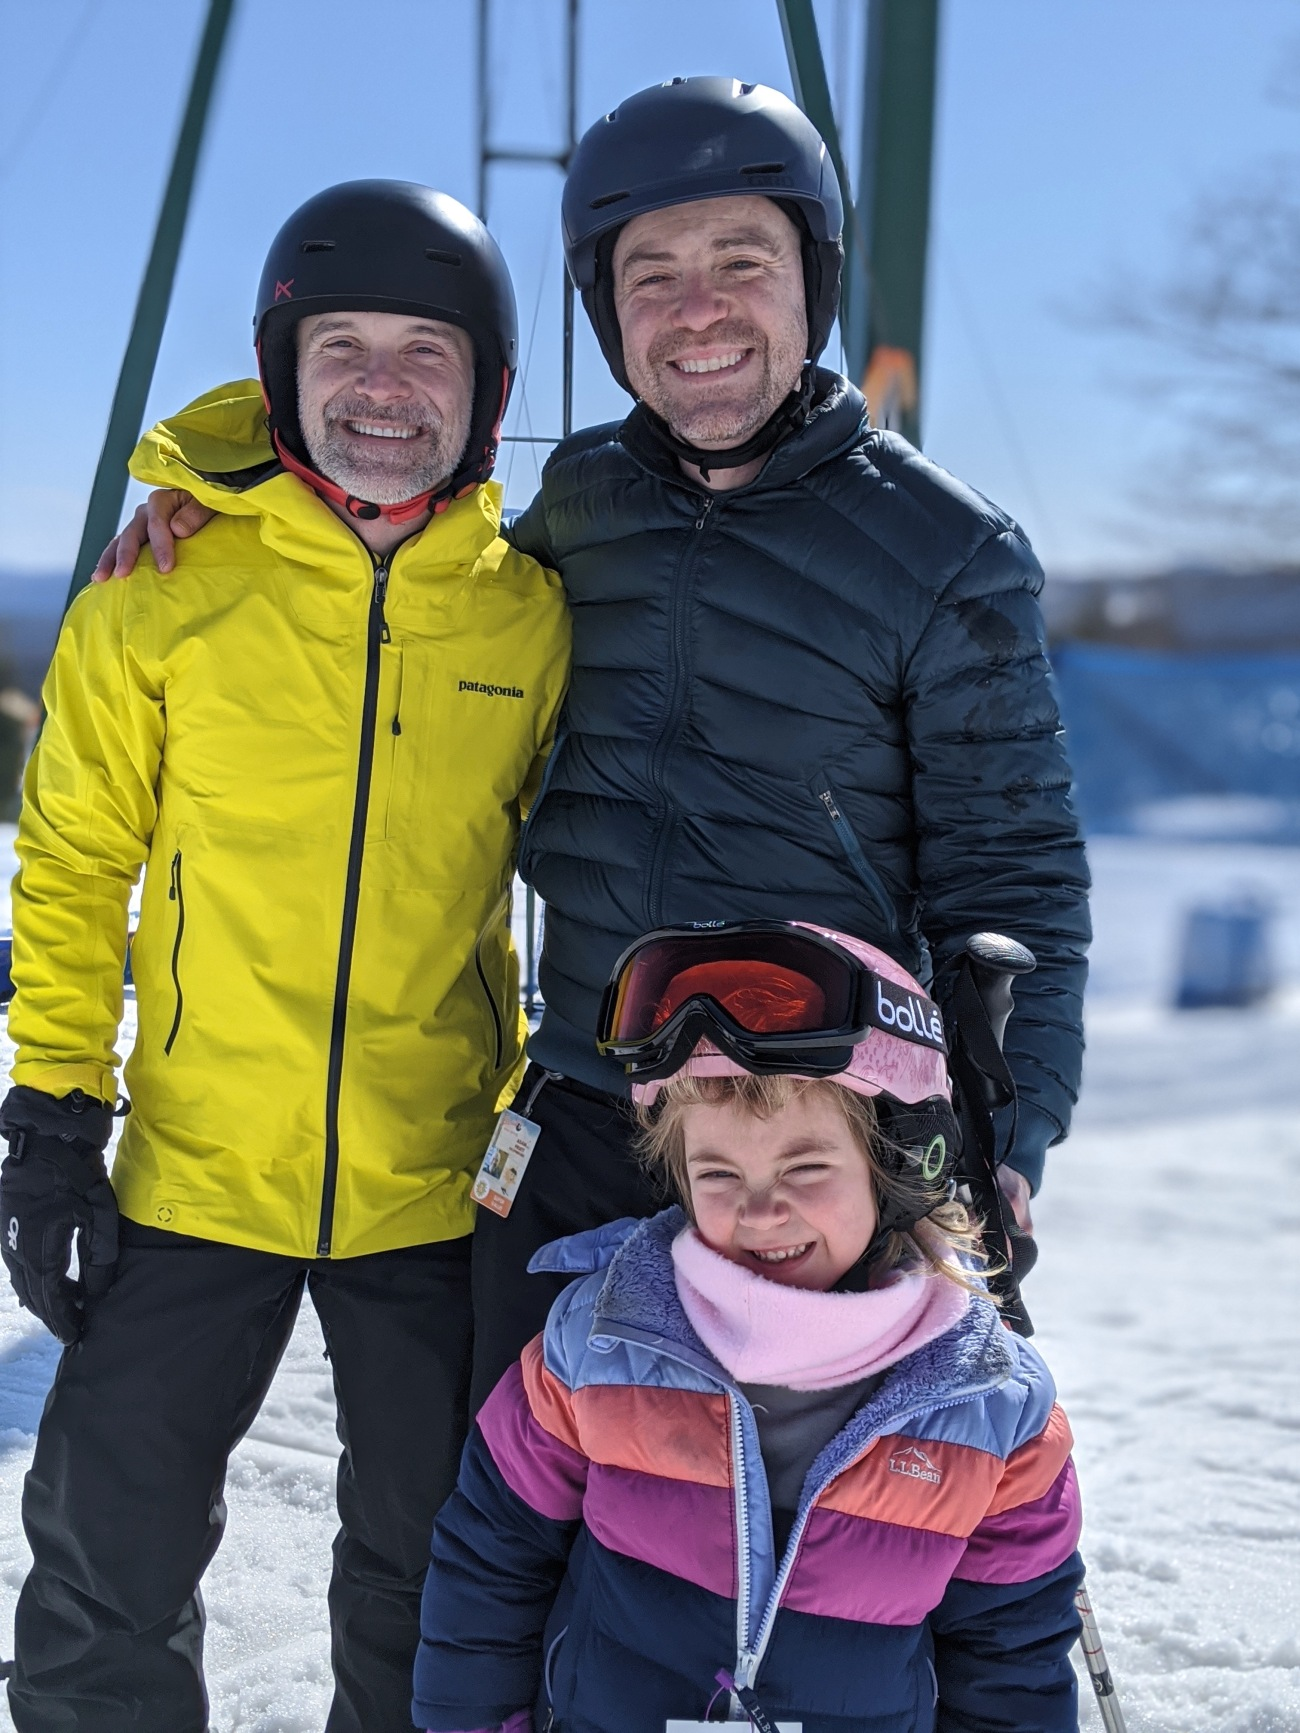 a man and his husband with their daughter in skiing gear in front a snowy mountain